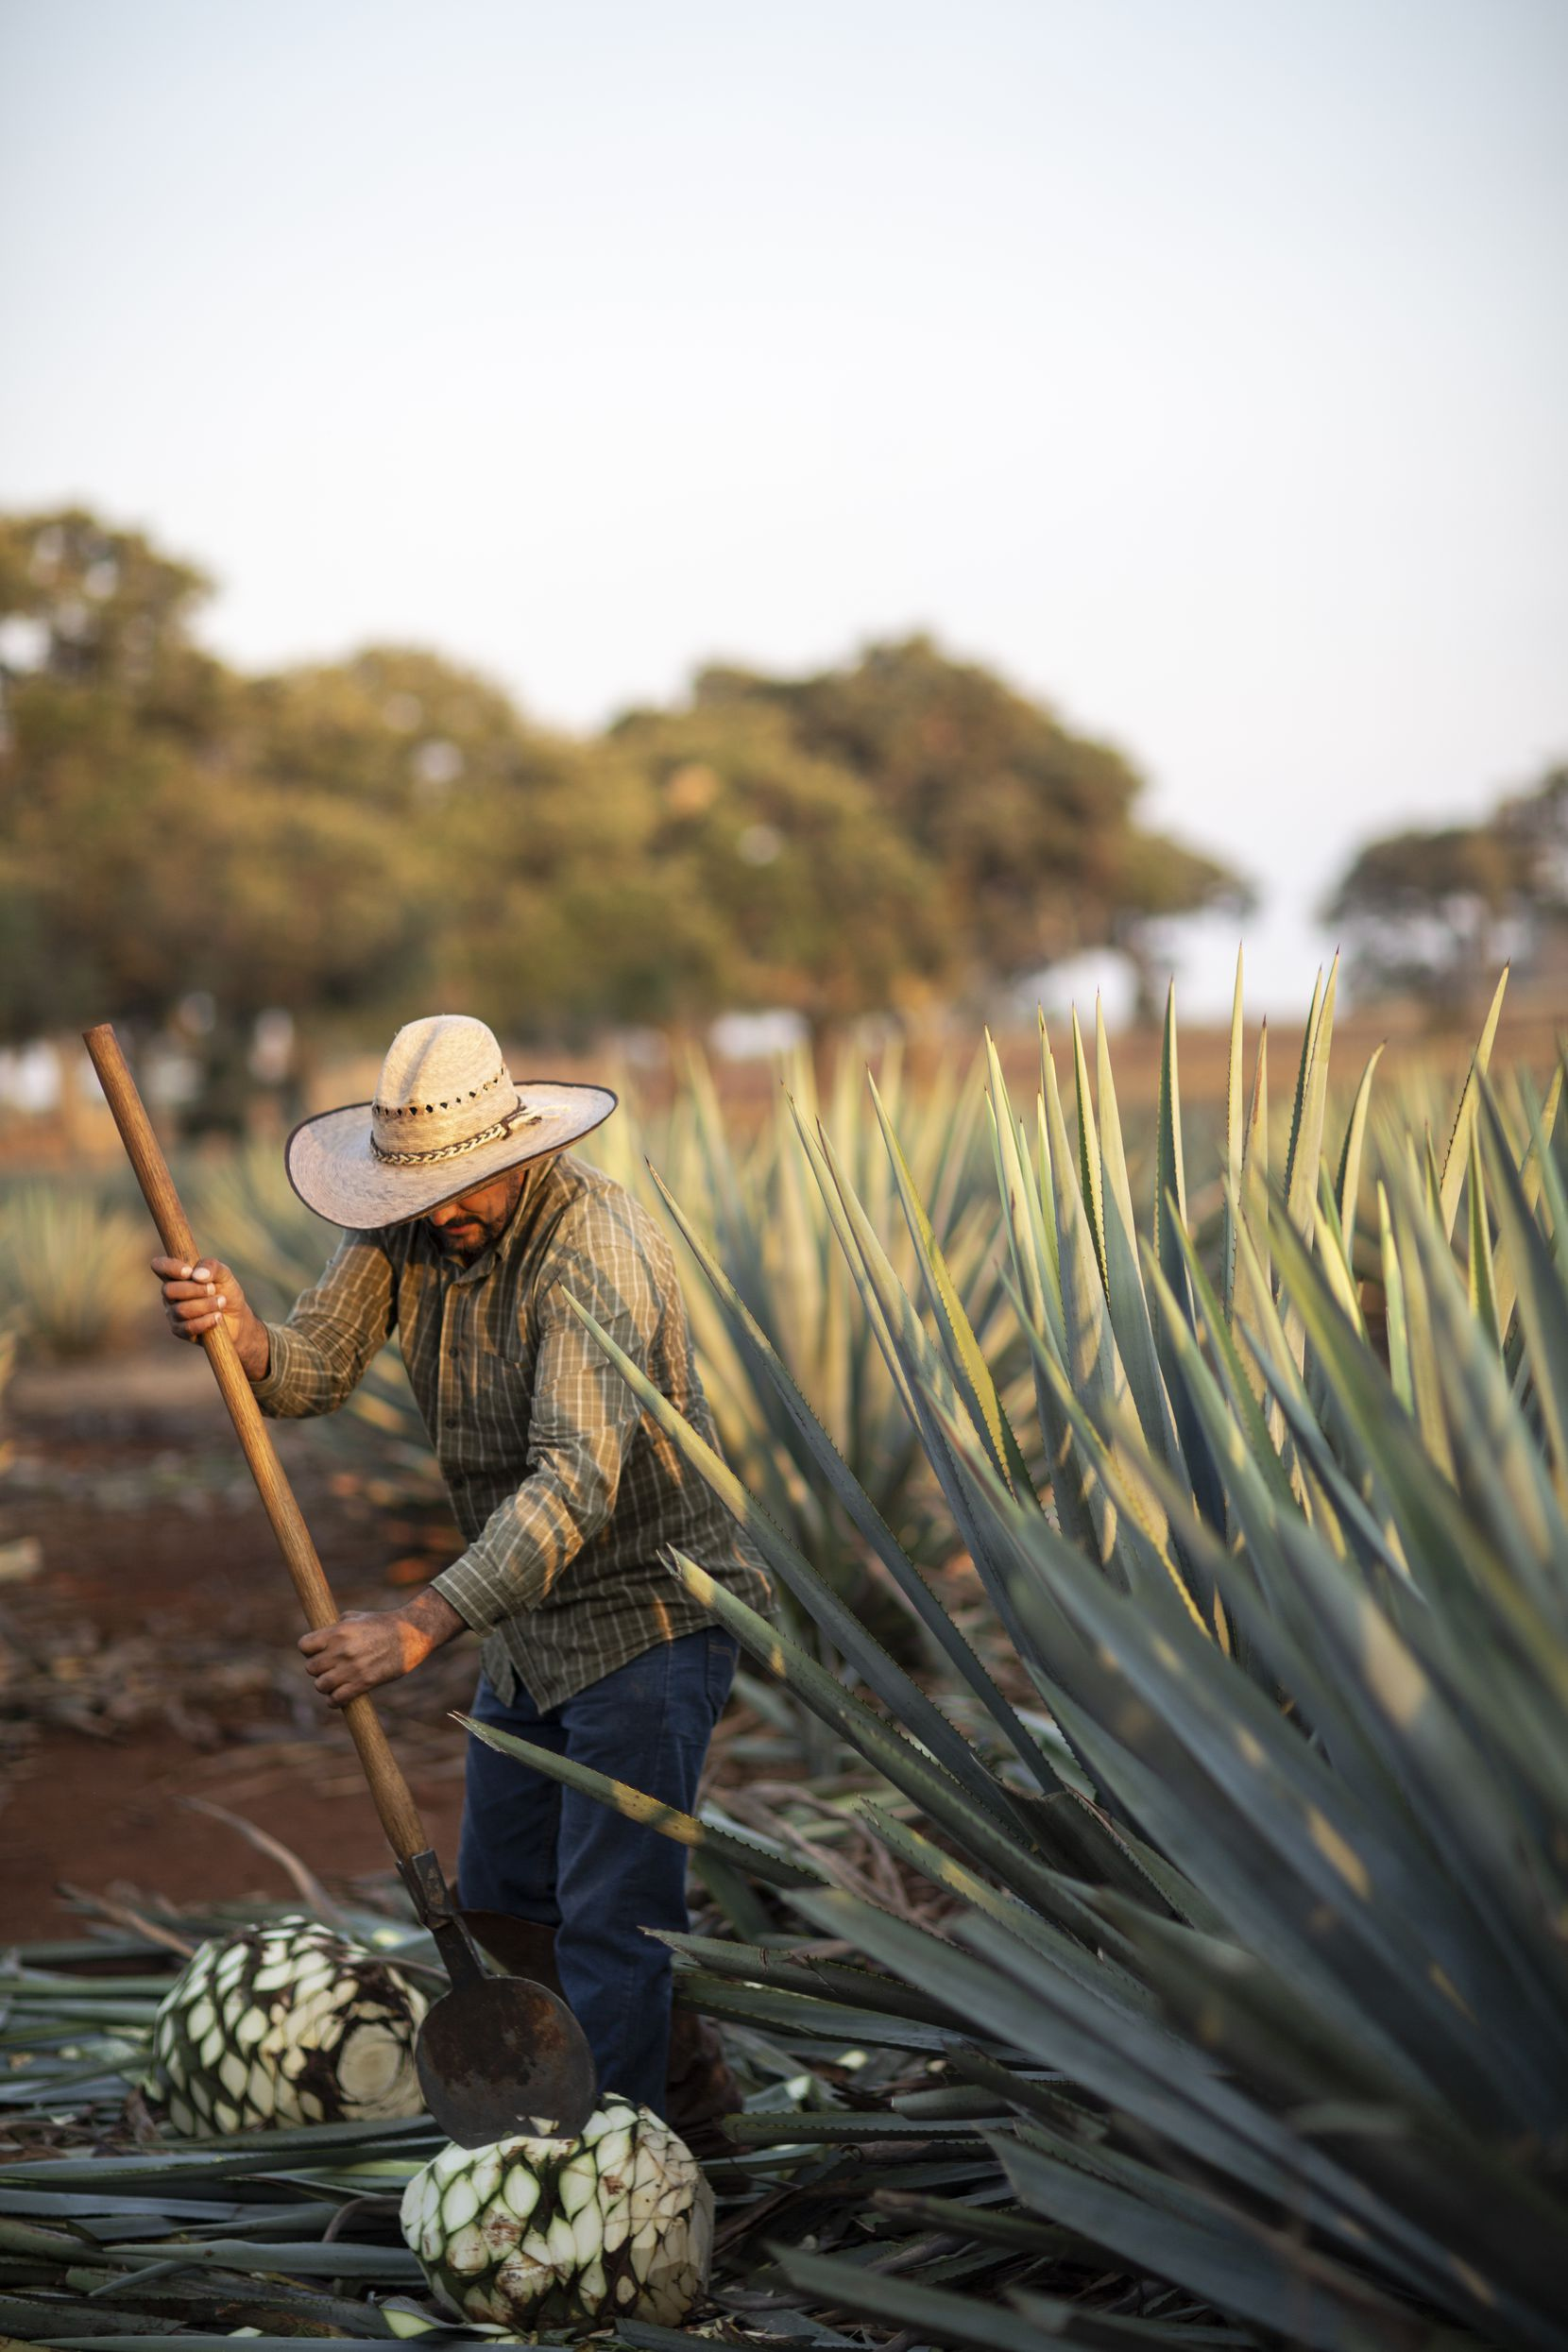 A jimador (Mexican farmer who harvests agave plants) works at La Altena Distillery in the Jalisco highlands.